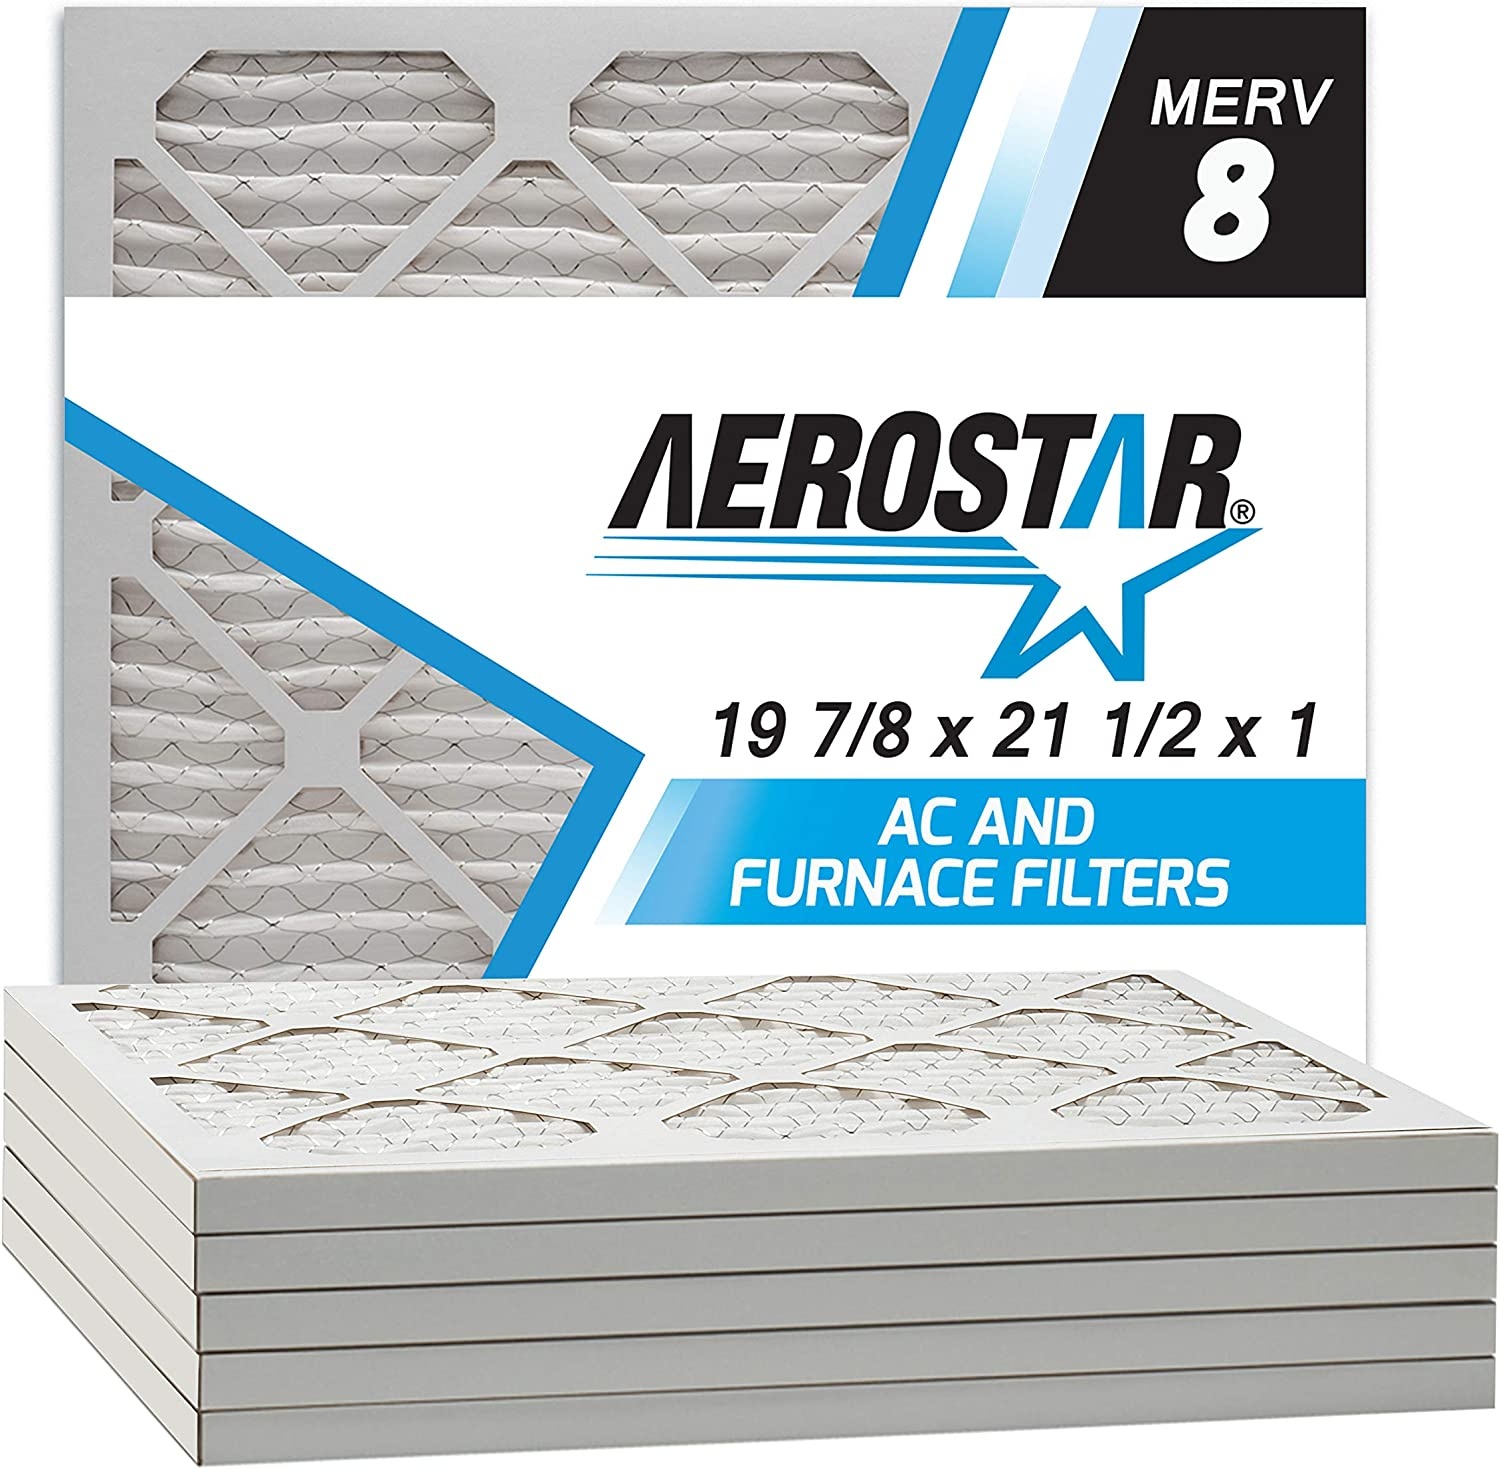 Aerostar 19 7/8x21 1/2x1 MERV 8 Honeywell Replacement Pleated Air Filter